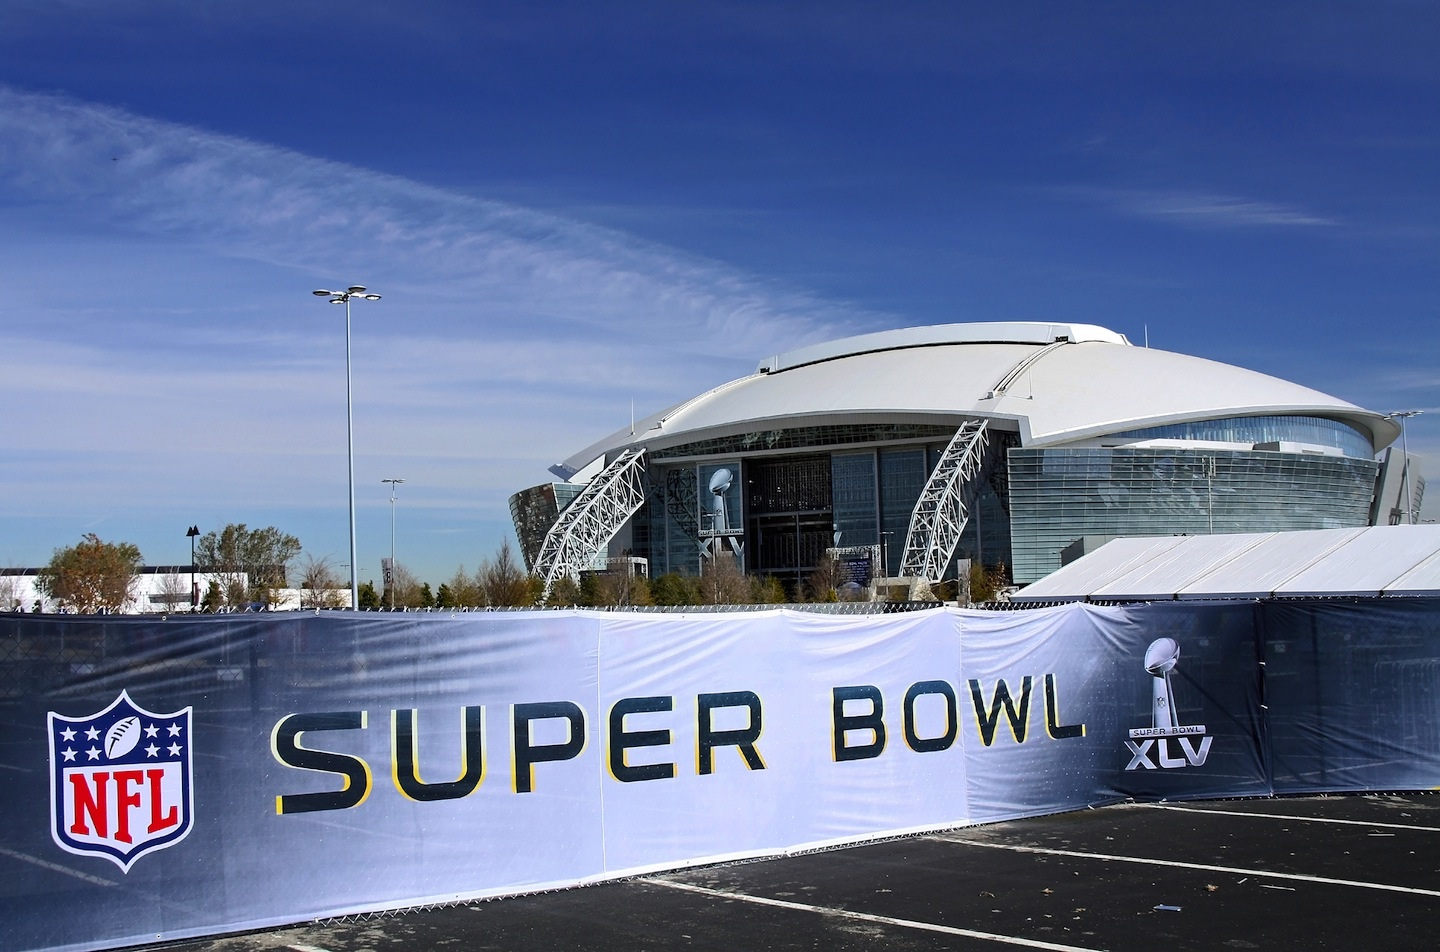 Fans Would Miss Work or a Child's Birth to Attend the Super Bowl